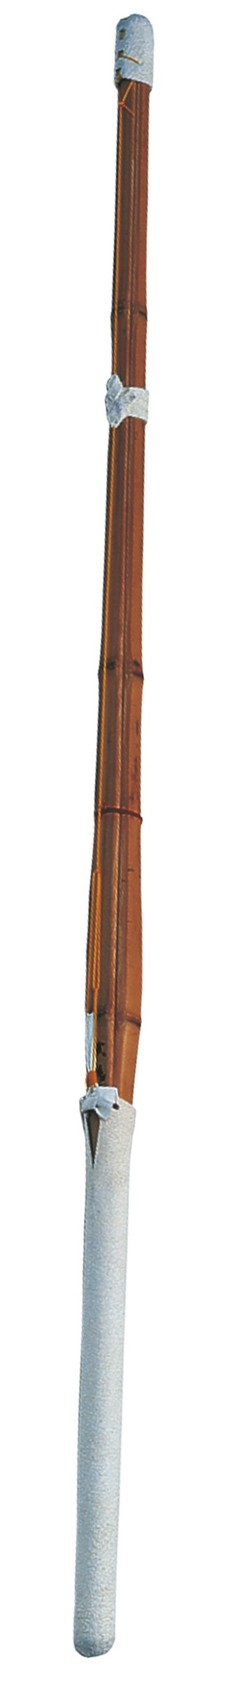 SHINAI ENFANT IMPORTATION (34) M40834